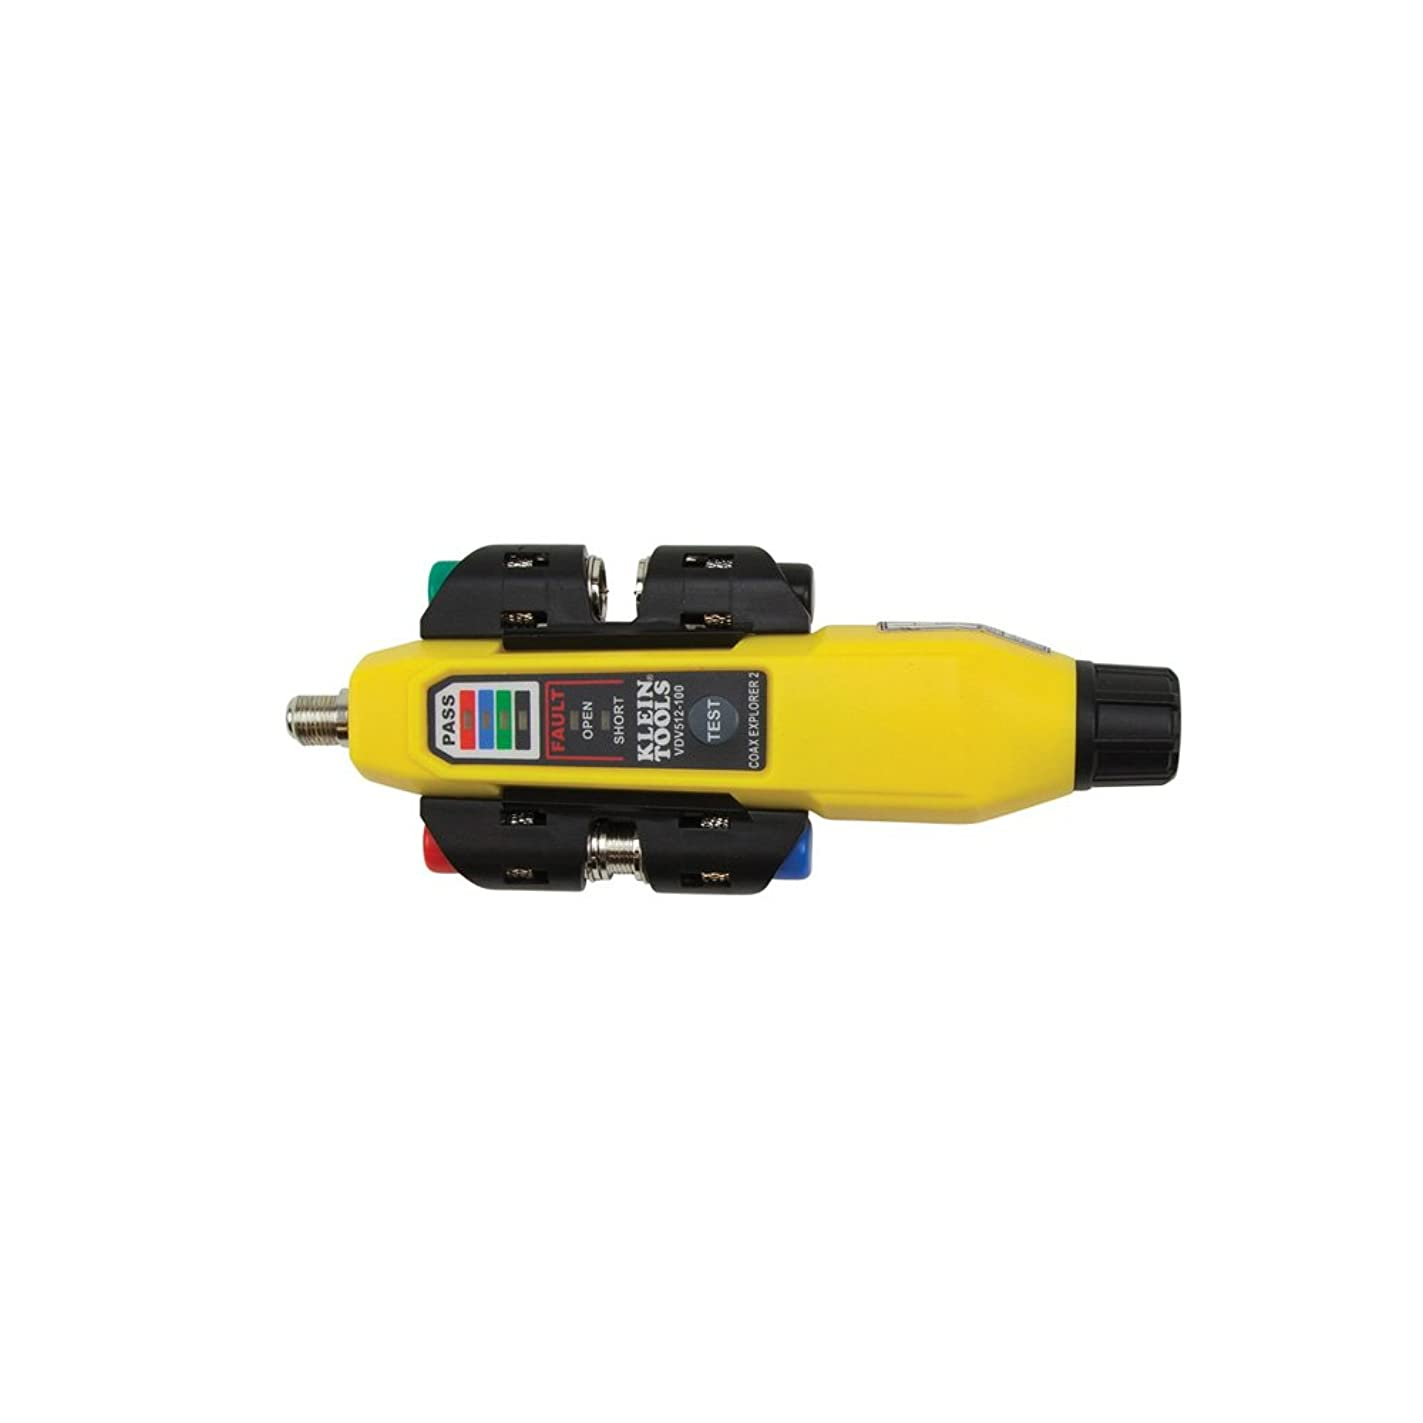 Coax Tester Tracer Mapper with Remote Kit, Test up to 4 Locations, Explorer 2 Klein Tools VDV512-101